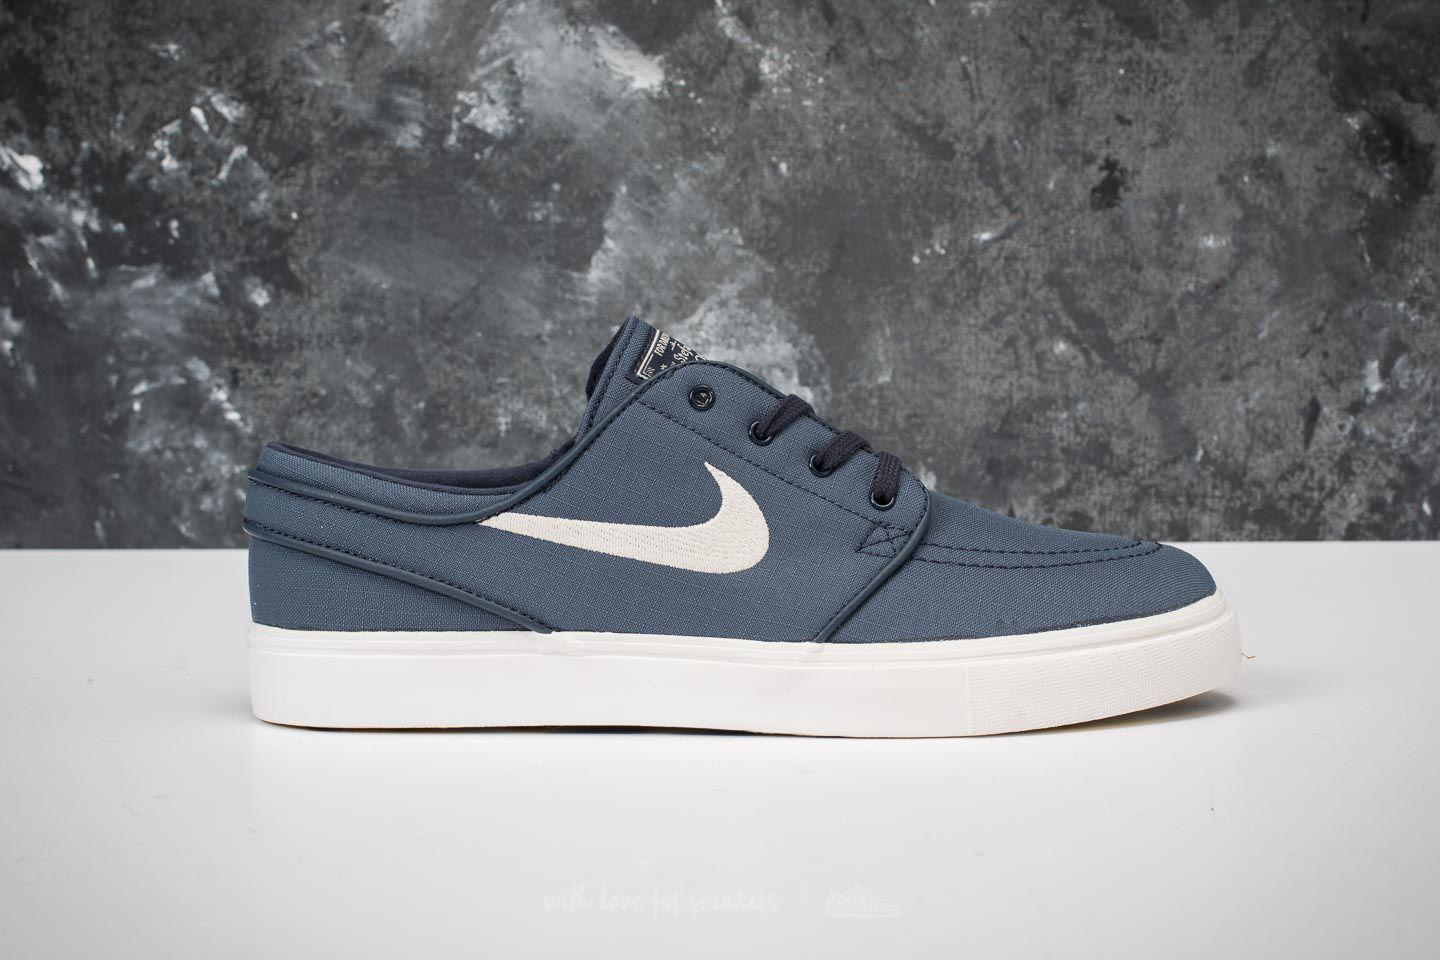 e131046d11ecc Lyst - Nike Zoom Stefan Janoski Canvas Thunder Blue  Light Bone in ...